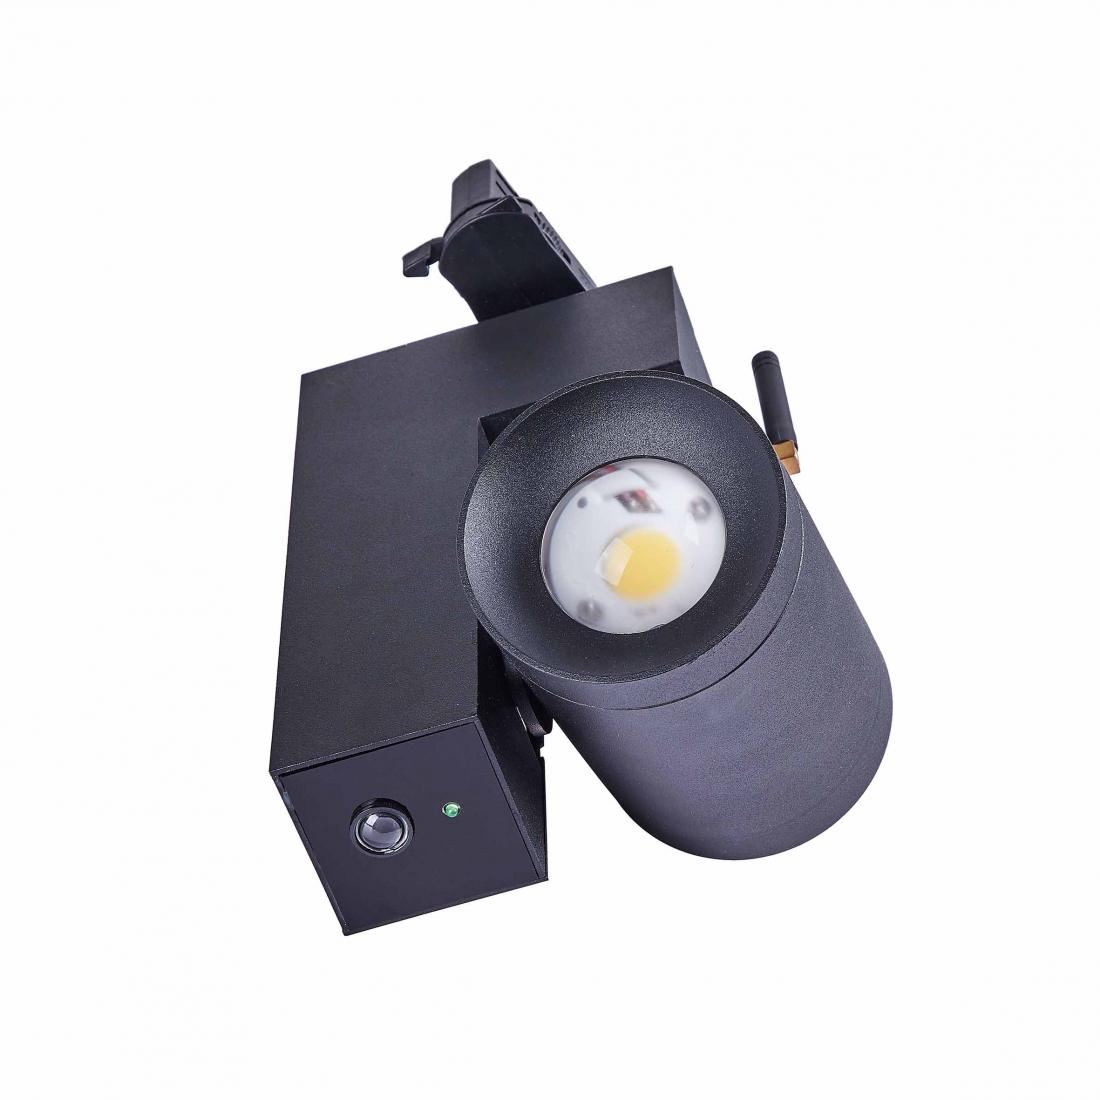 High Level 30W LED Smart Control Track Light